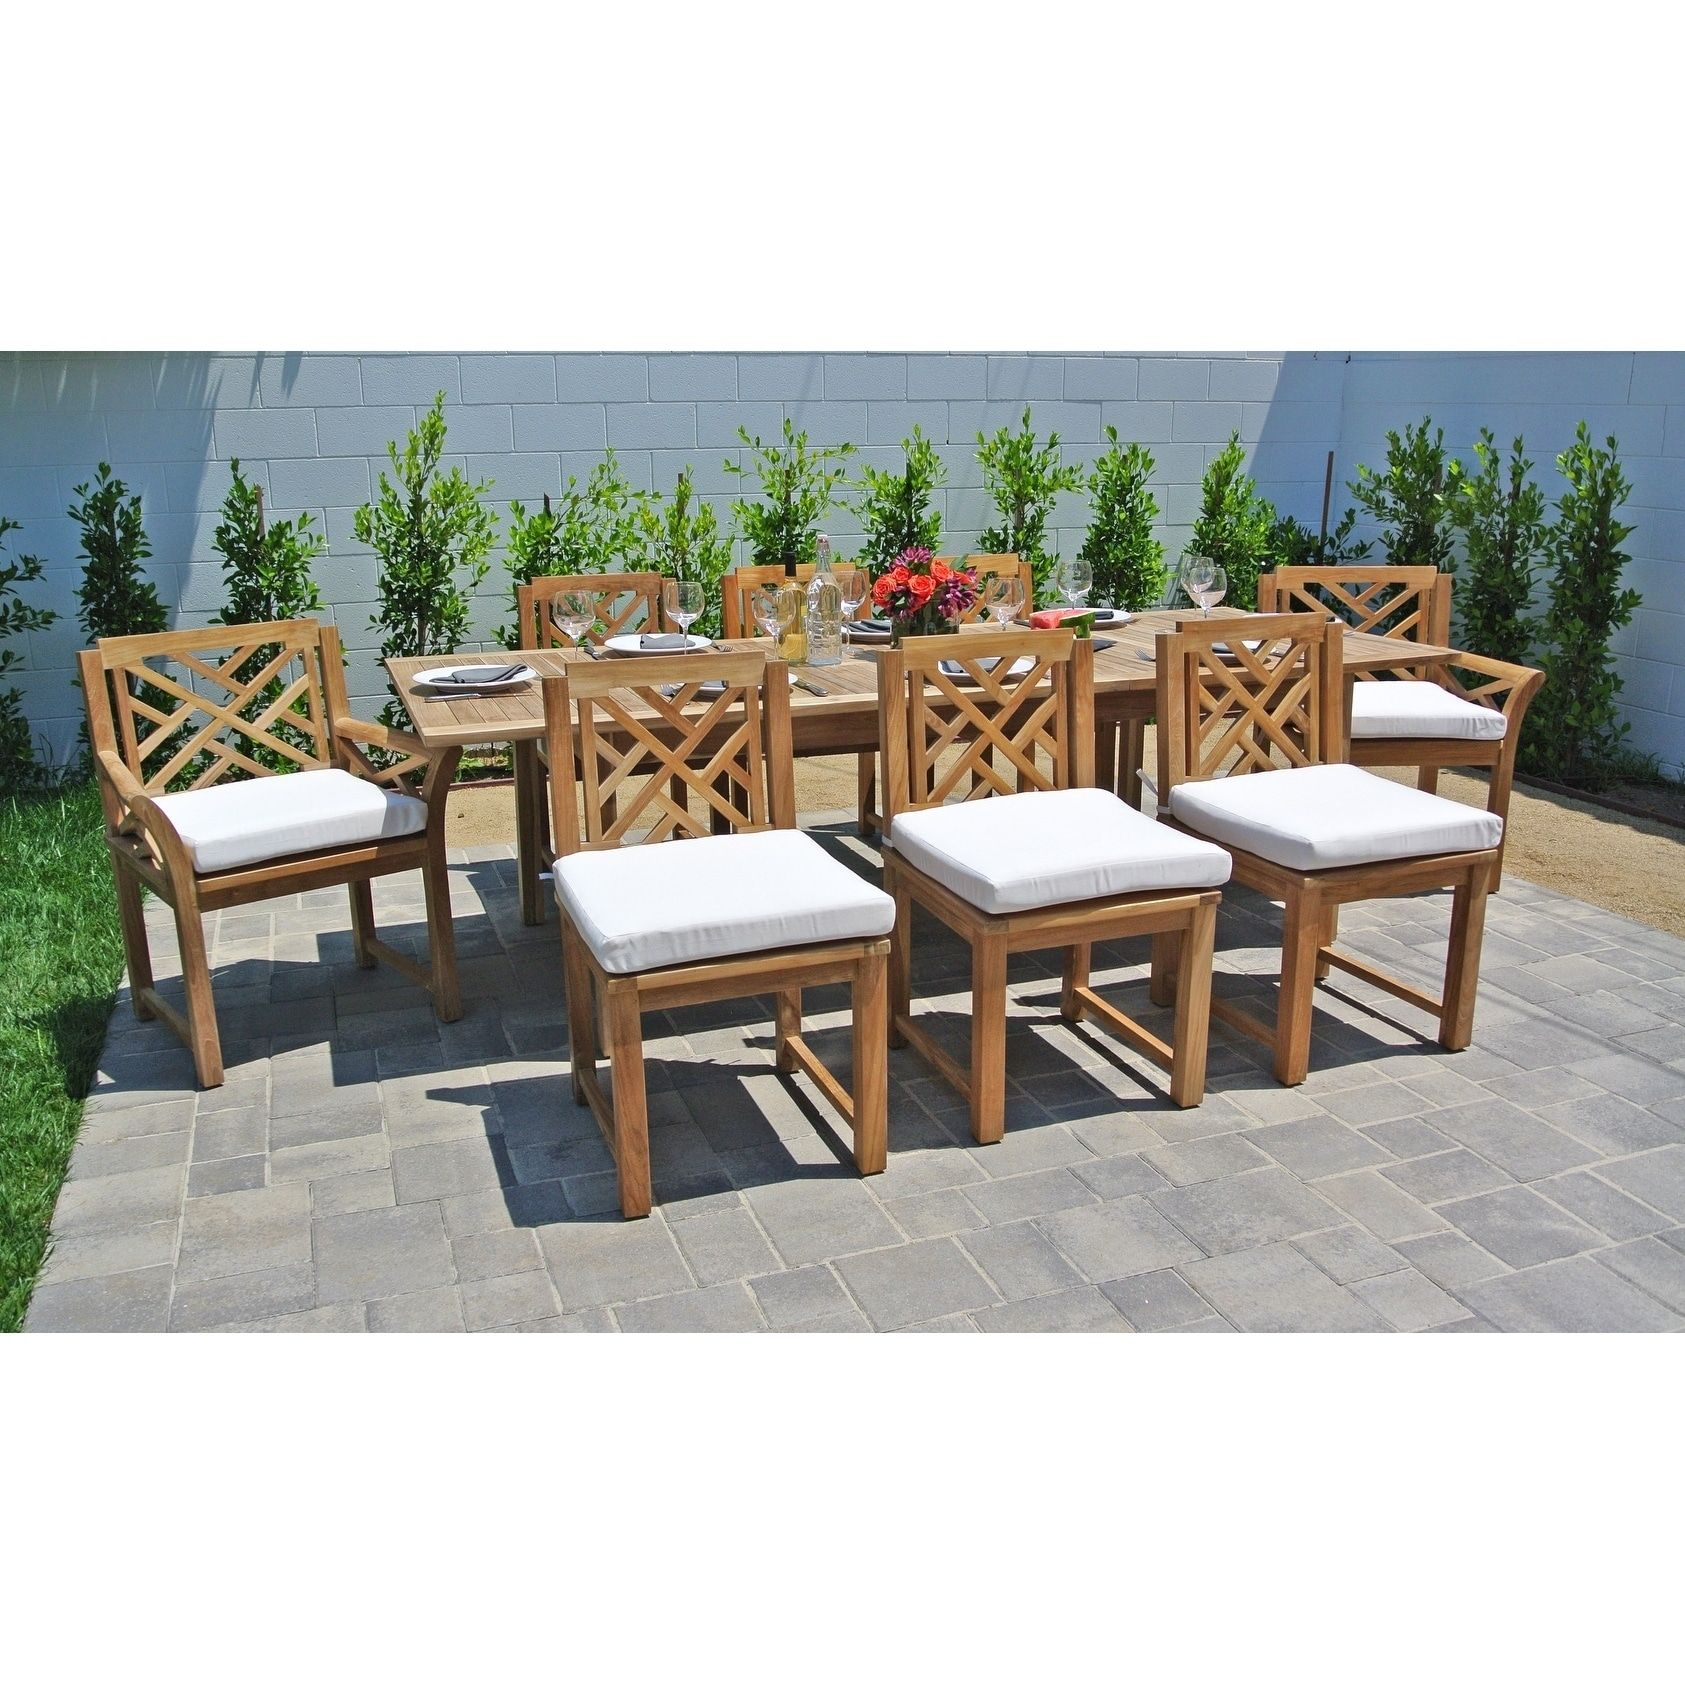 9 pc Monterey Teak Outdoor Patio Furniture Dining Set with